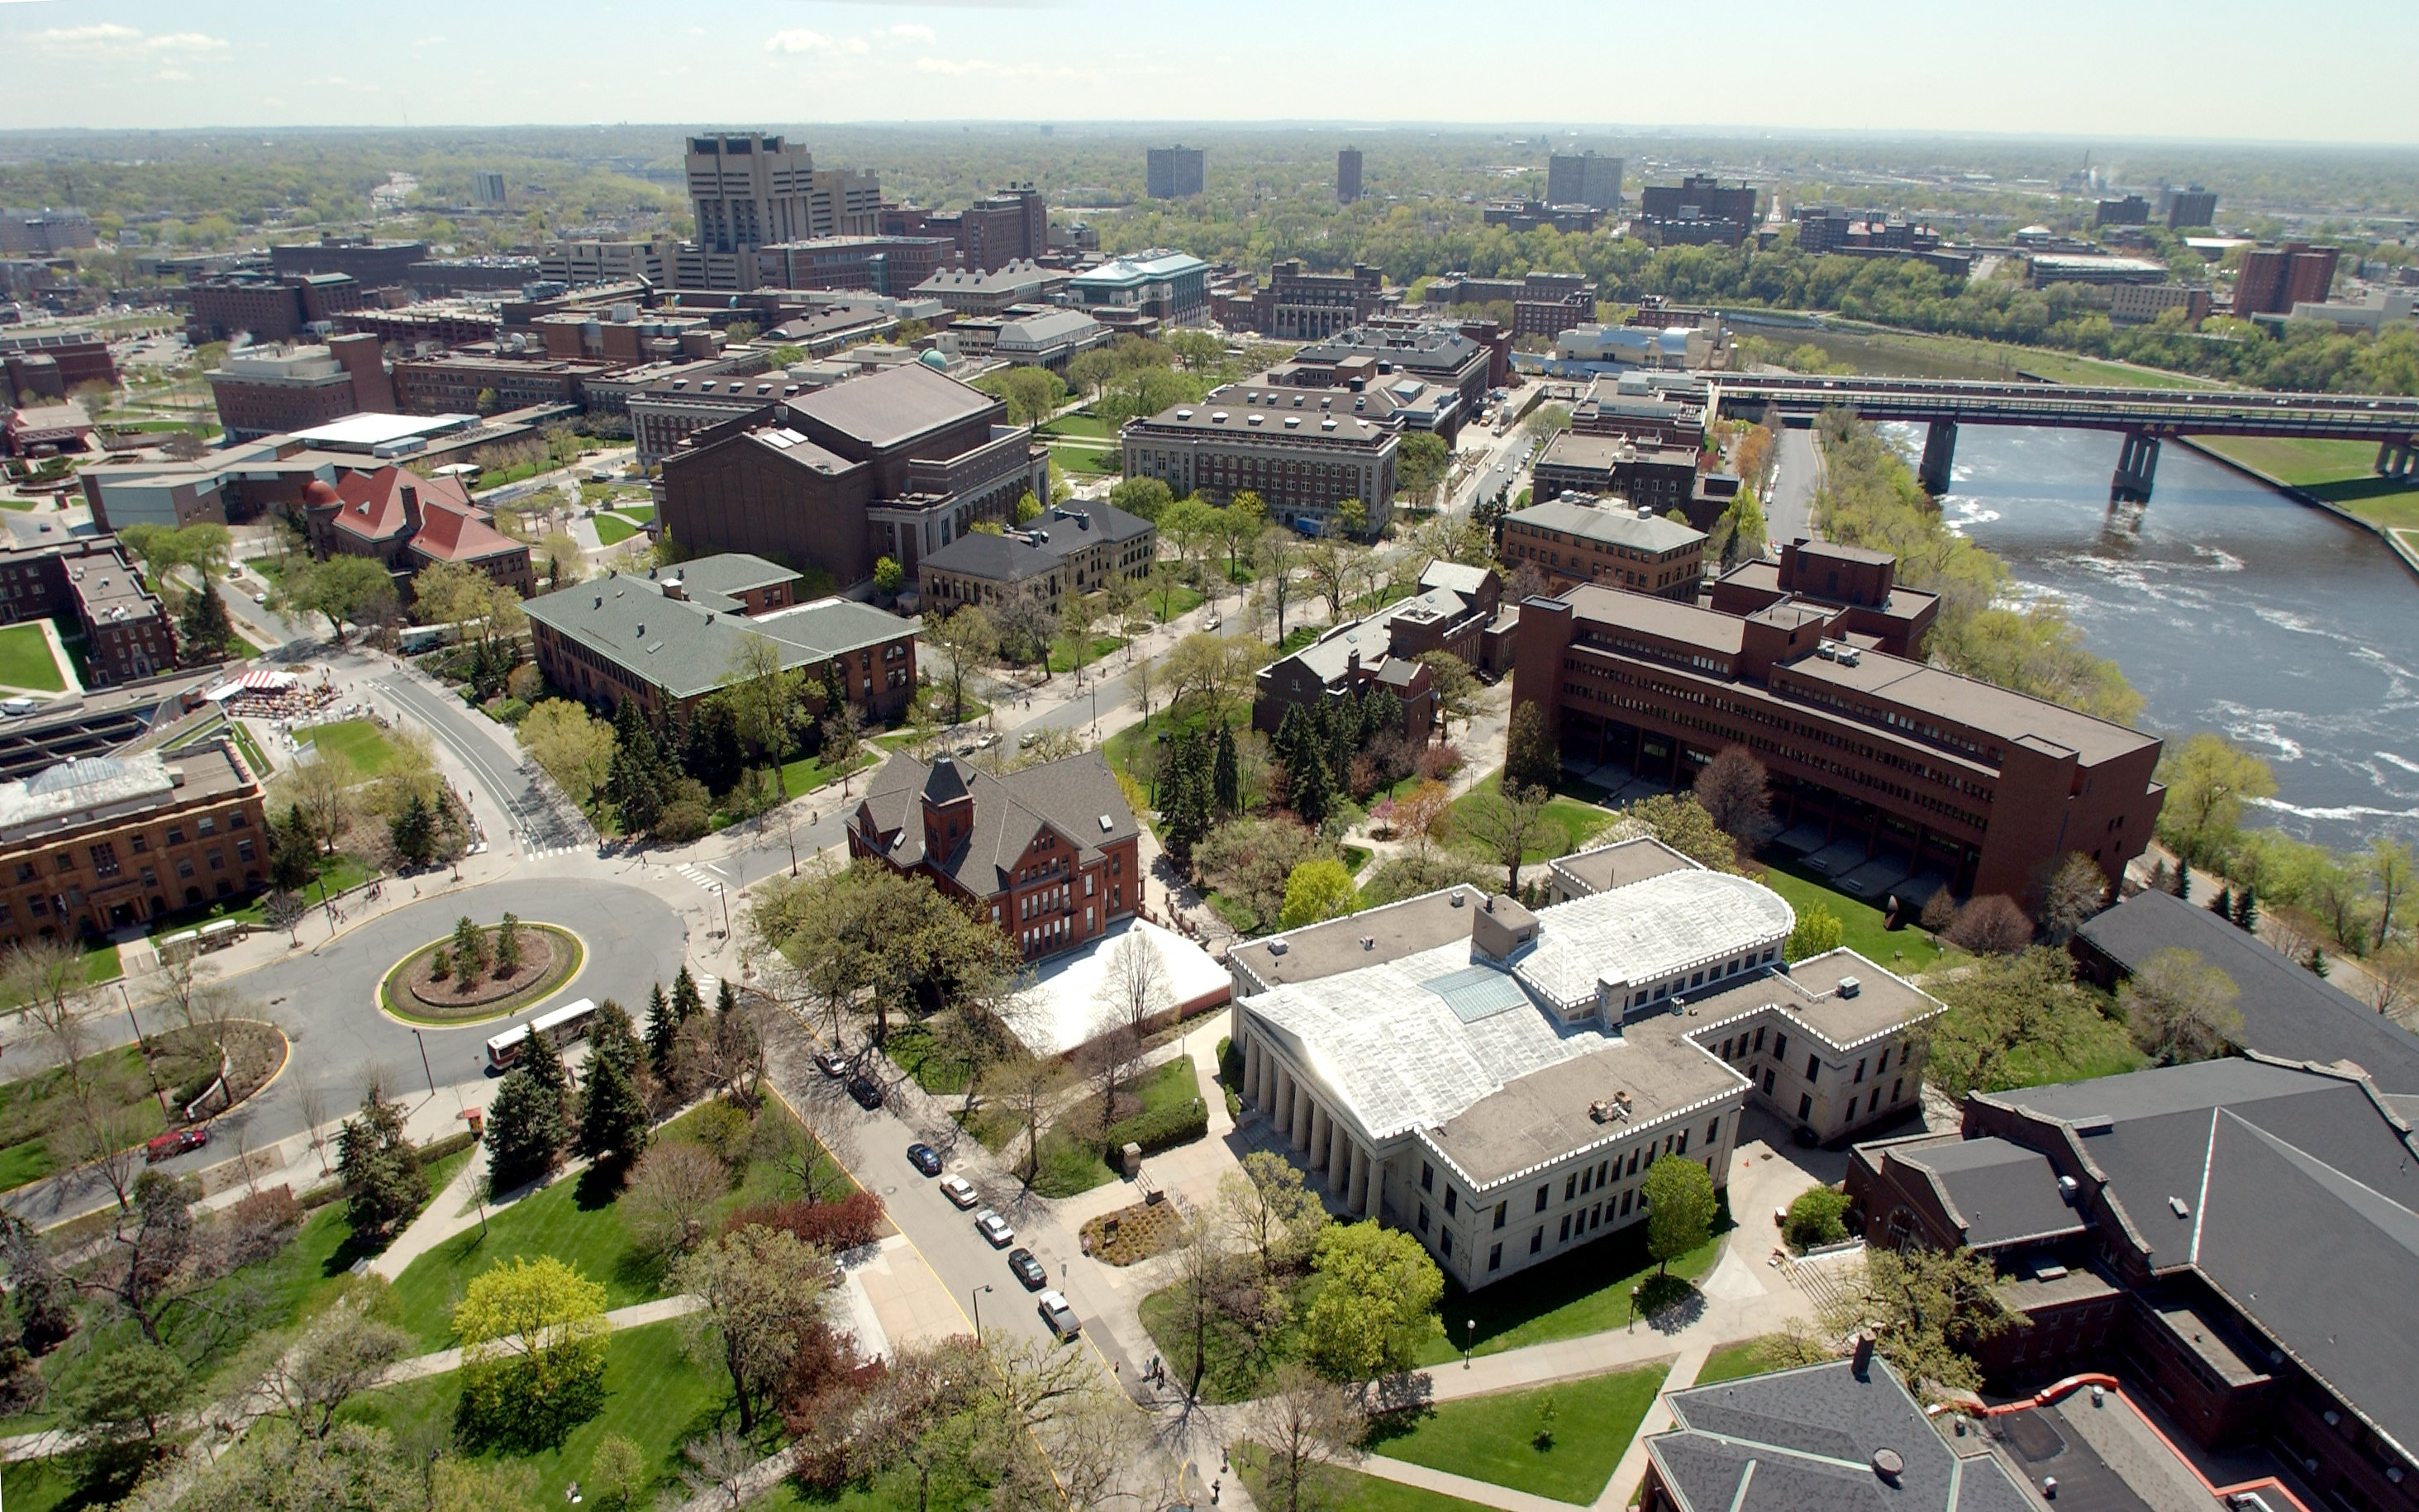 u_of_mn_campus_looking_south_photo_by_umn_news_svc.jpg